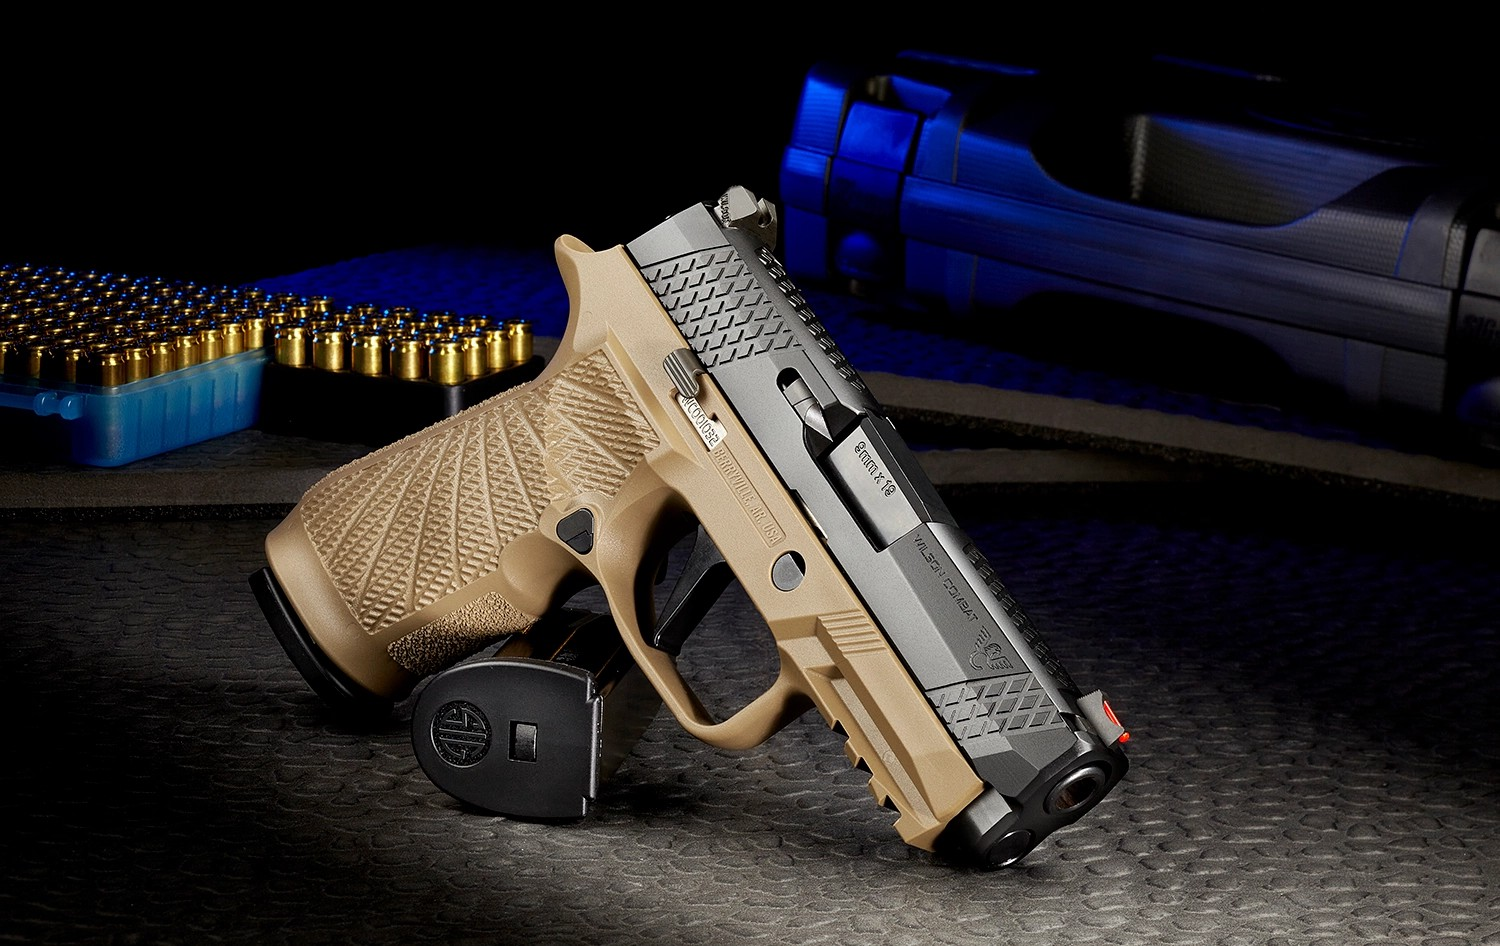 WILSON COMBAT ANNOUNCES THE WCP320 CARRY PISTOL